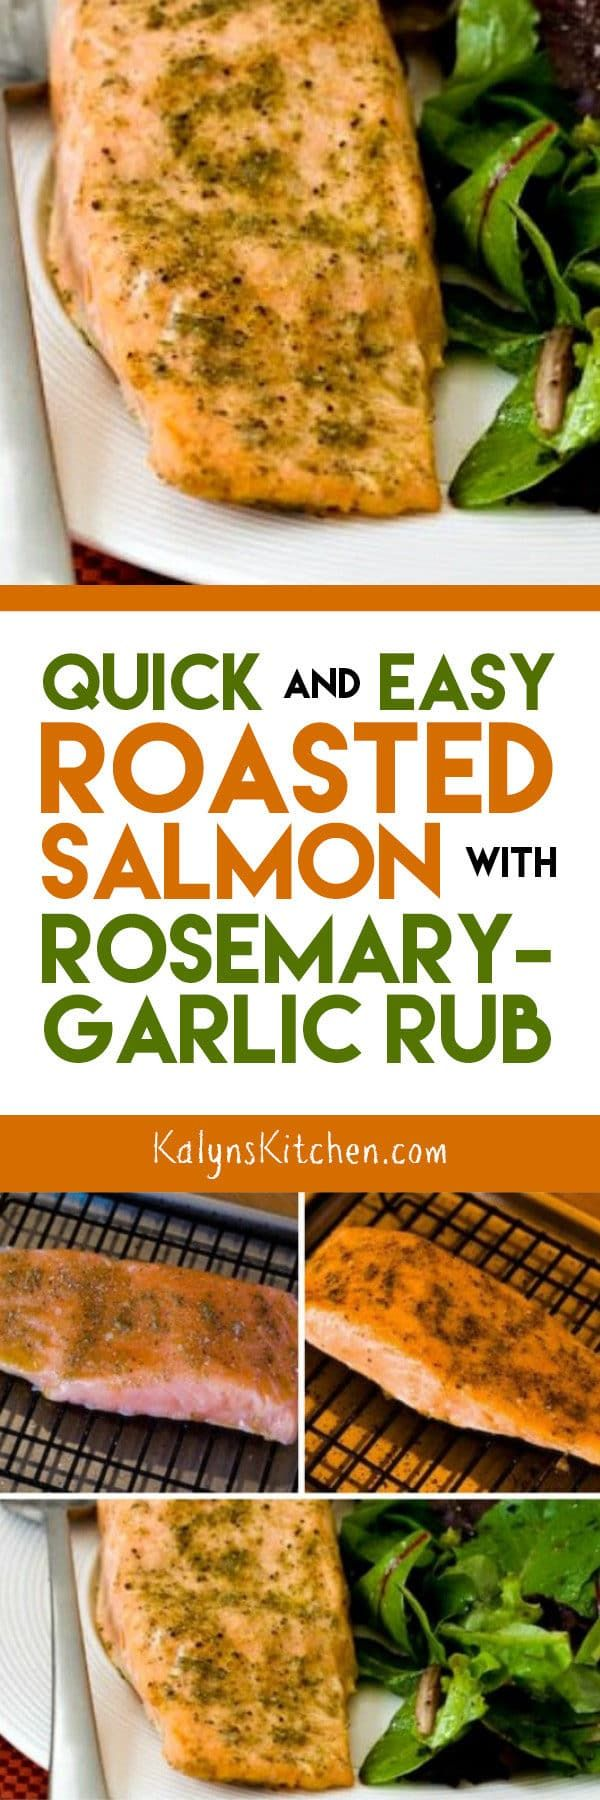 Quick and Easy Roasted Salmon with Rosemary-Garlic Rub